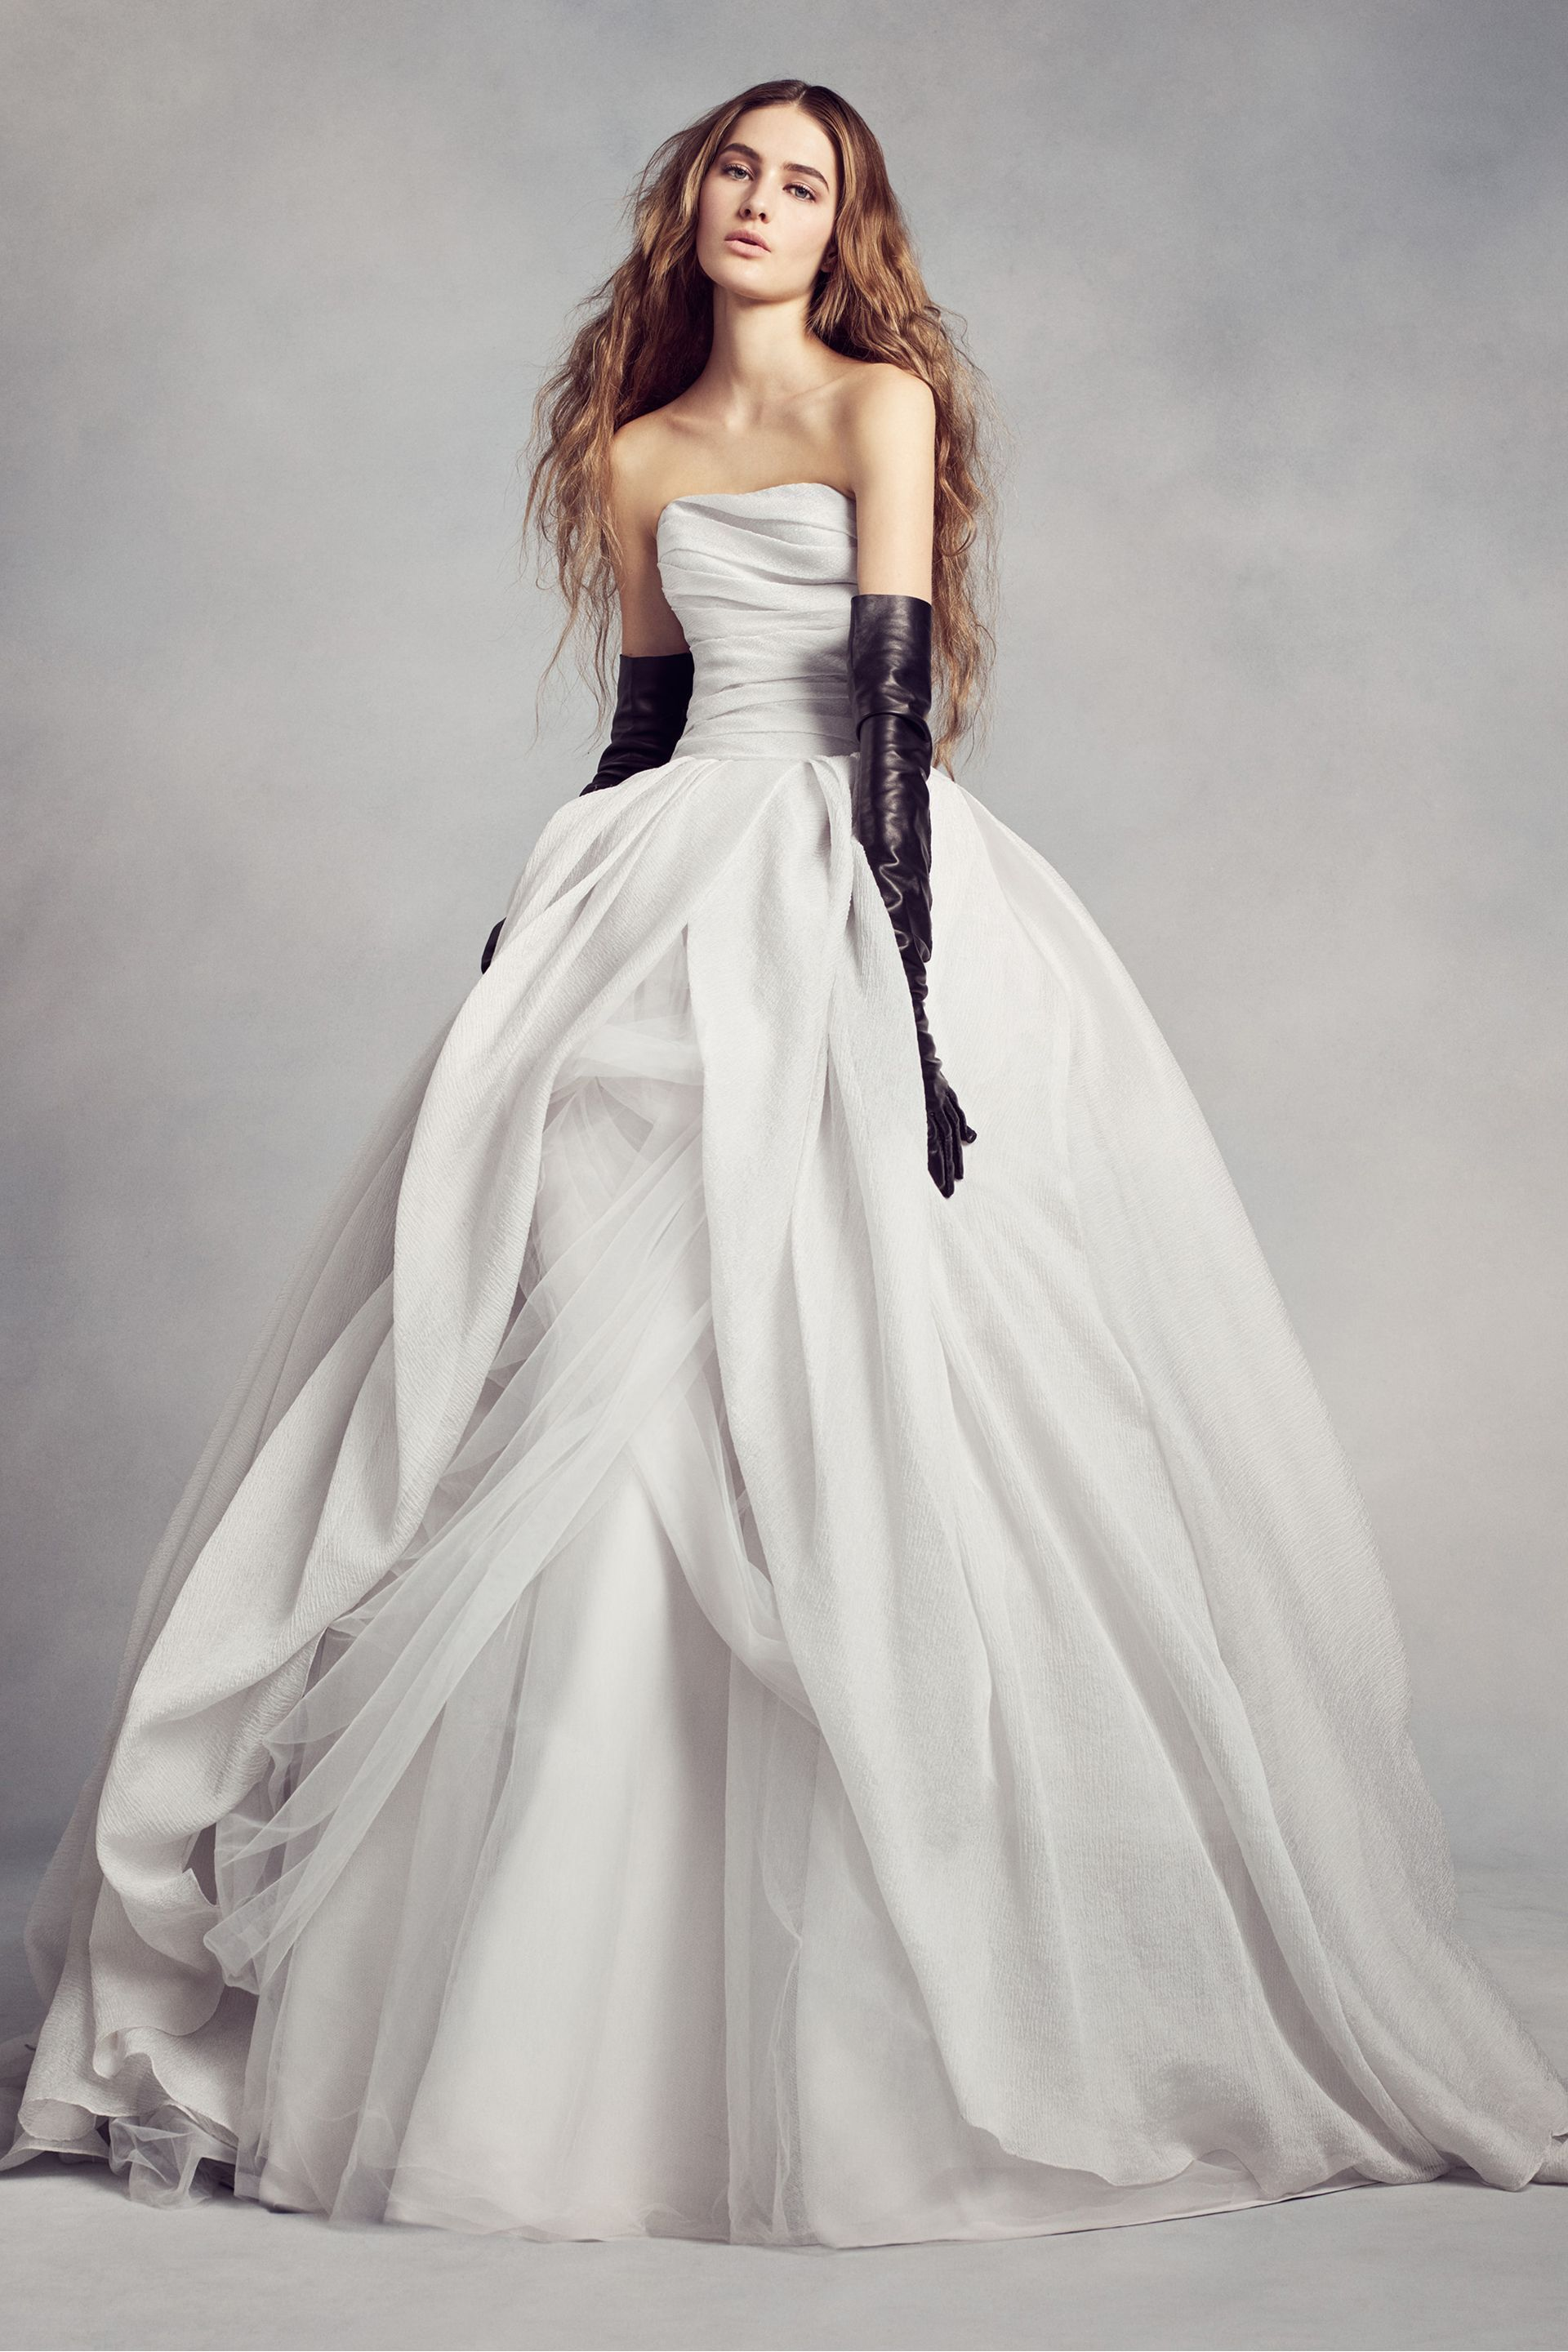 9d5b5c0cf391 To find the wedding dress of your dreams, here are 15 pieces perfect for all